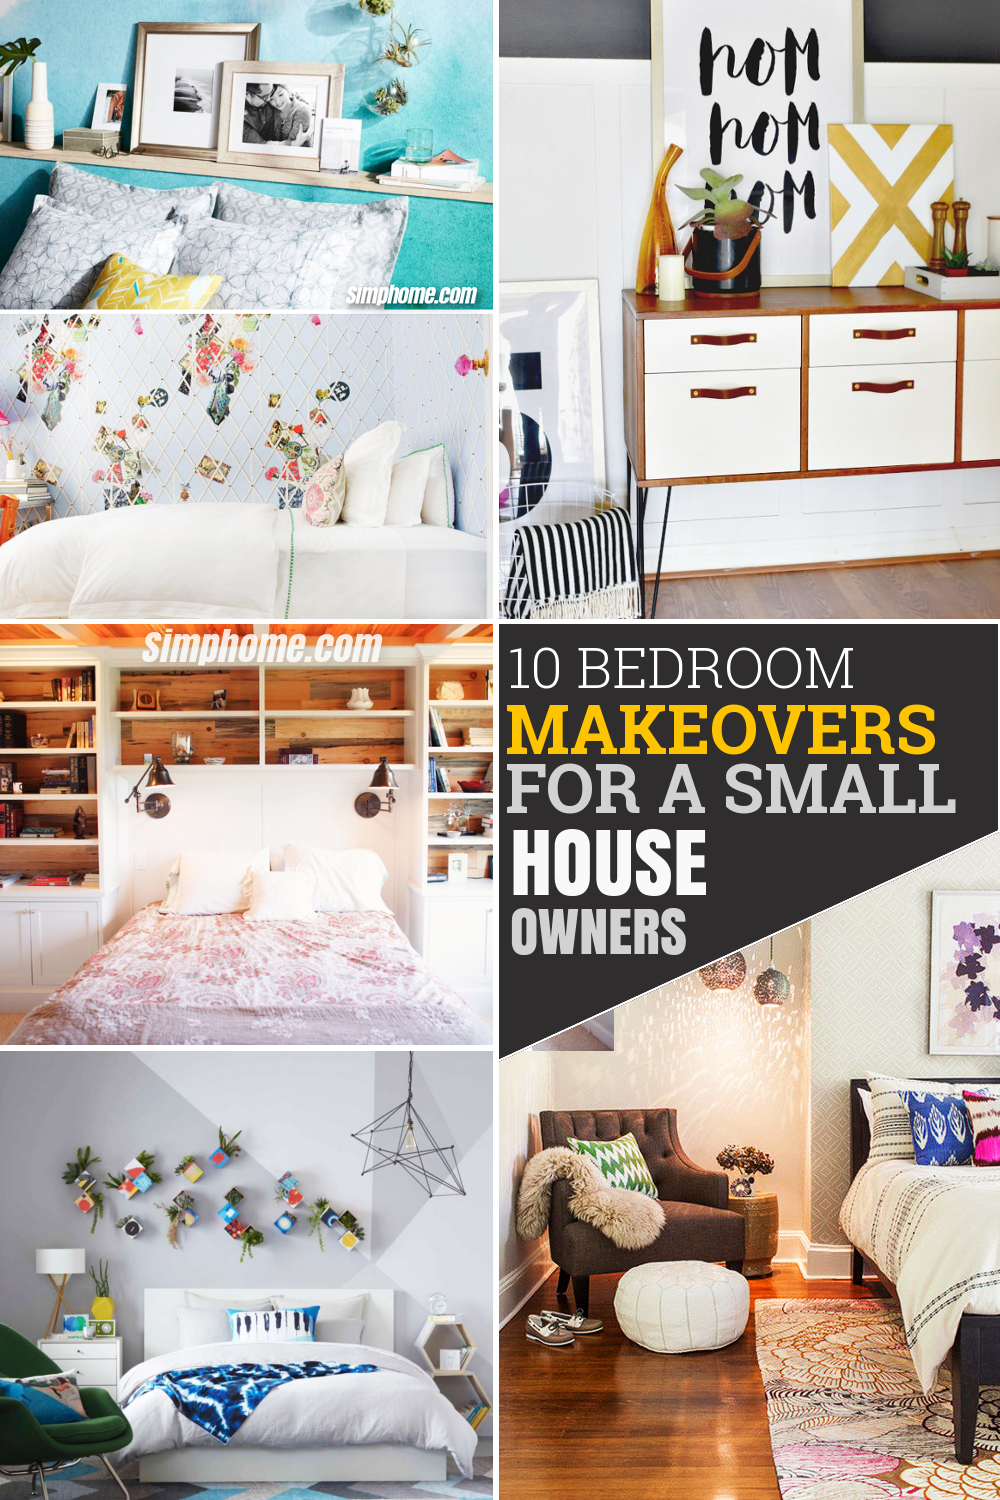 10 Dramatic Bedroom Makeover for Small House via Simphome com Pinterest Featured image